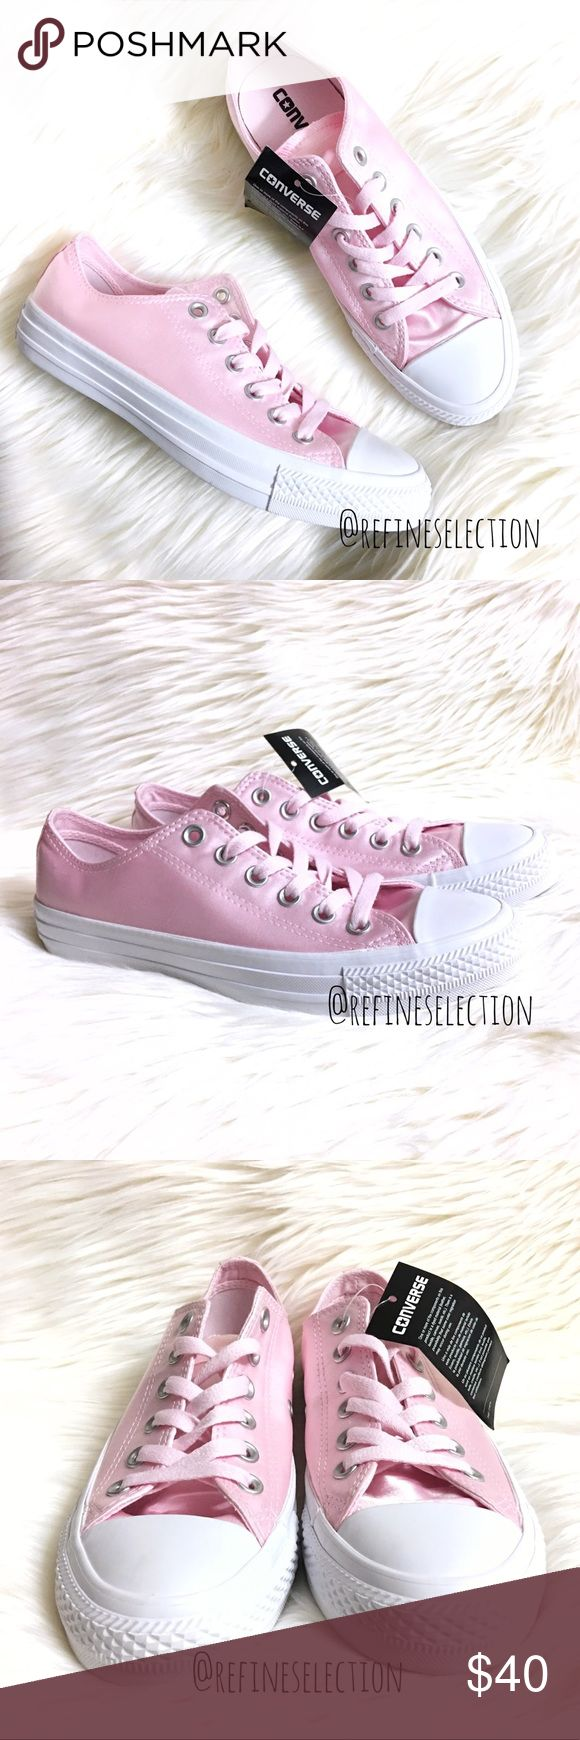 Converse Ox Satin Arctic Pink and White Sneakers Brand new with tags, in its original box, Women's size 7. Retails for $65! These Converse Ox Satin Arctic Pink and White Sneakers are so cute and sweet! Love the feminine satin pink with matching pink shoelaces. Has silver shoelace eyelets for durability. These low top sneakers add the perfect pop of color to your outfit! White sole. Converse Shoes Sneakers